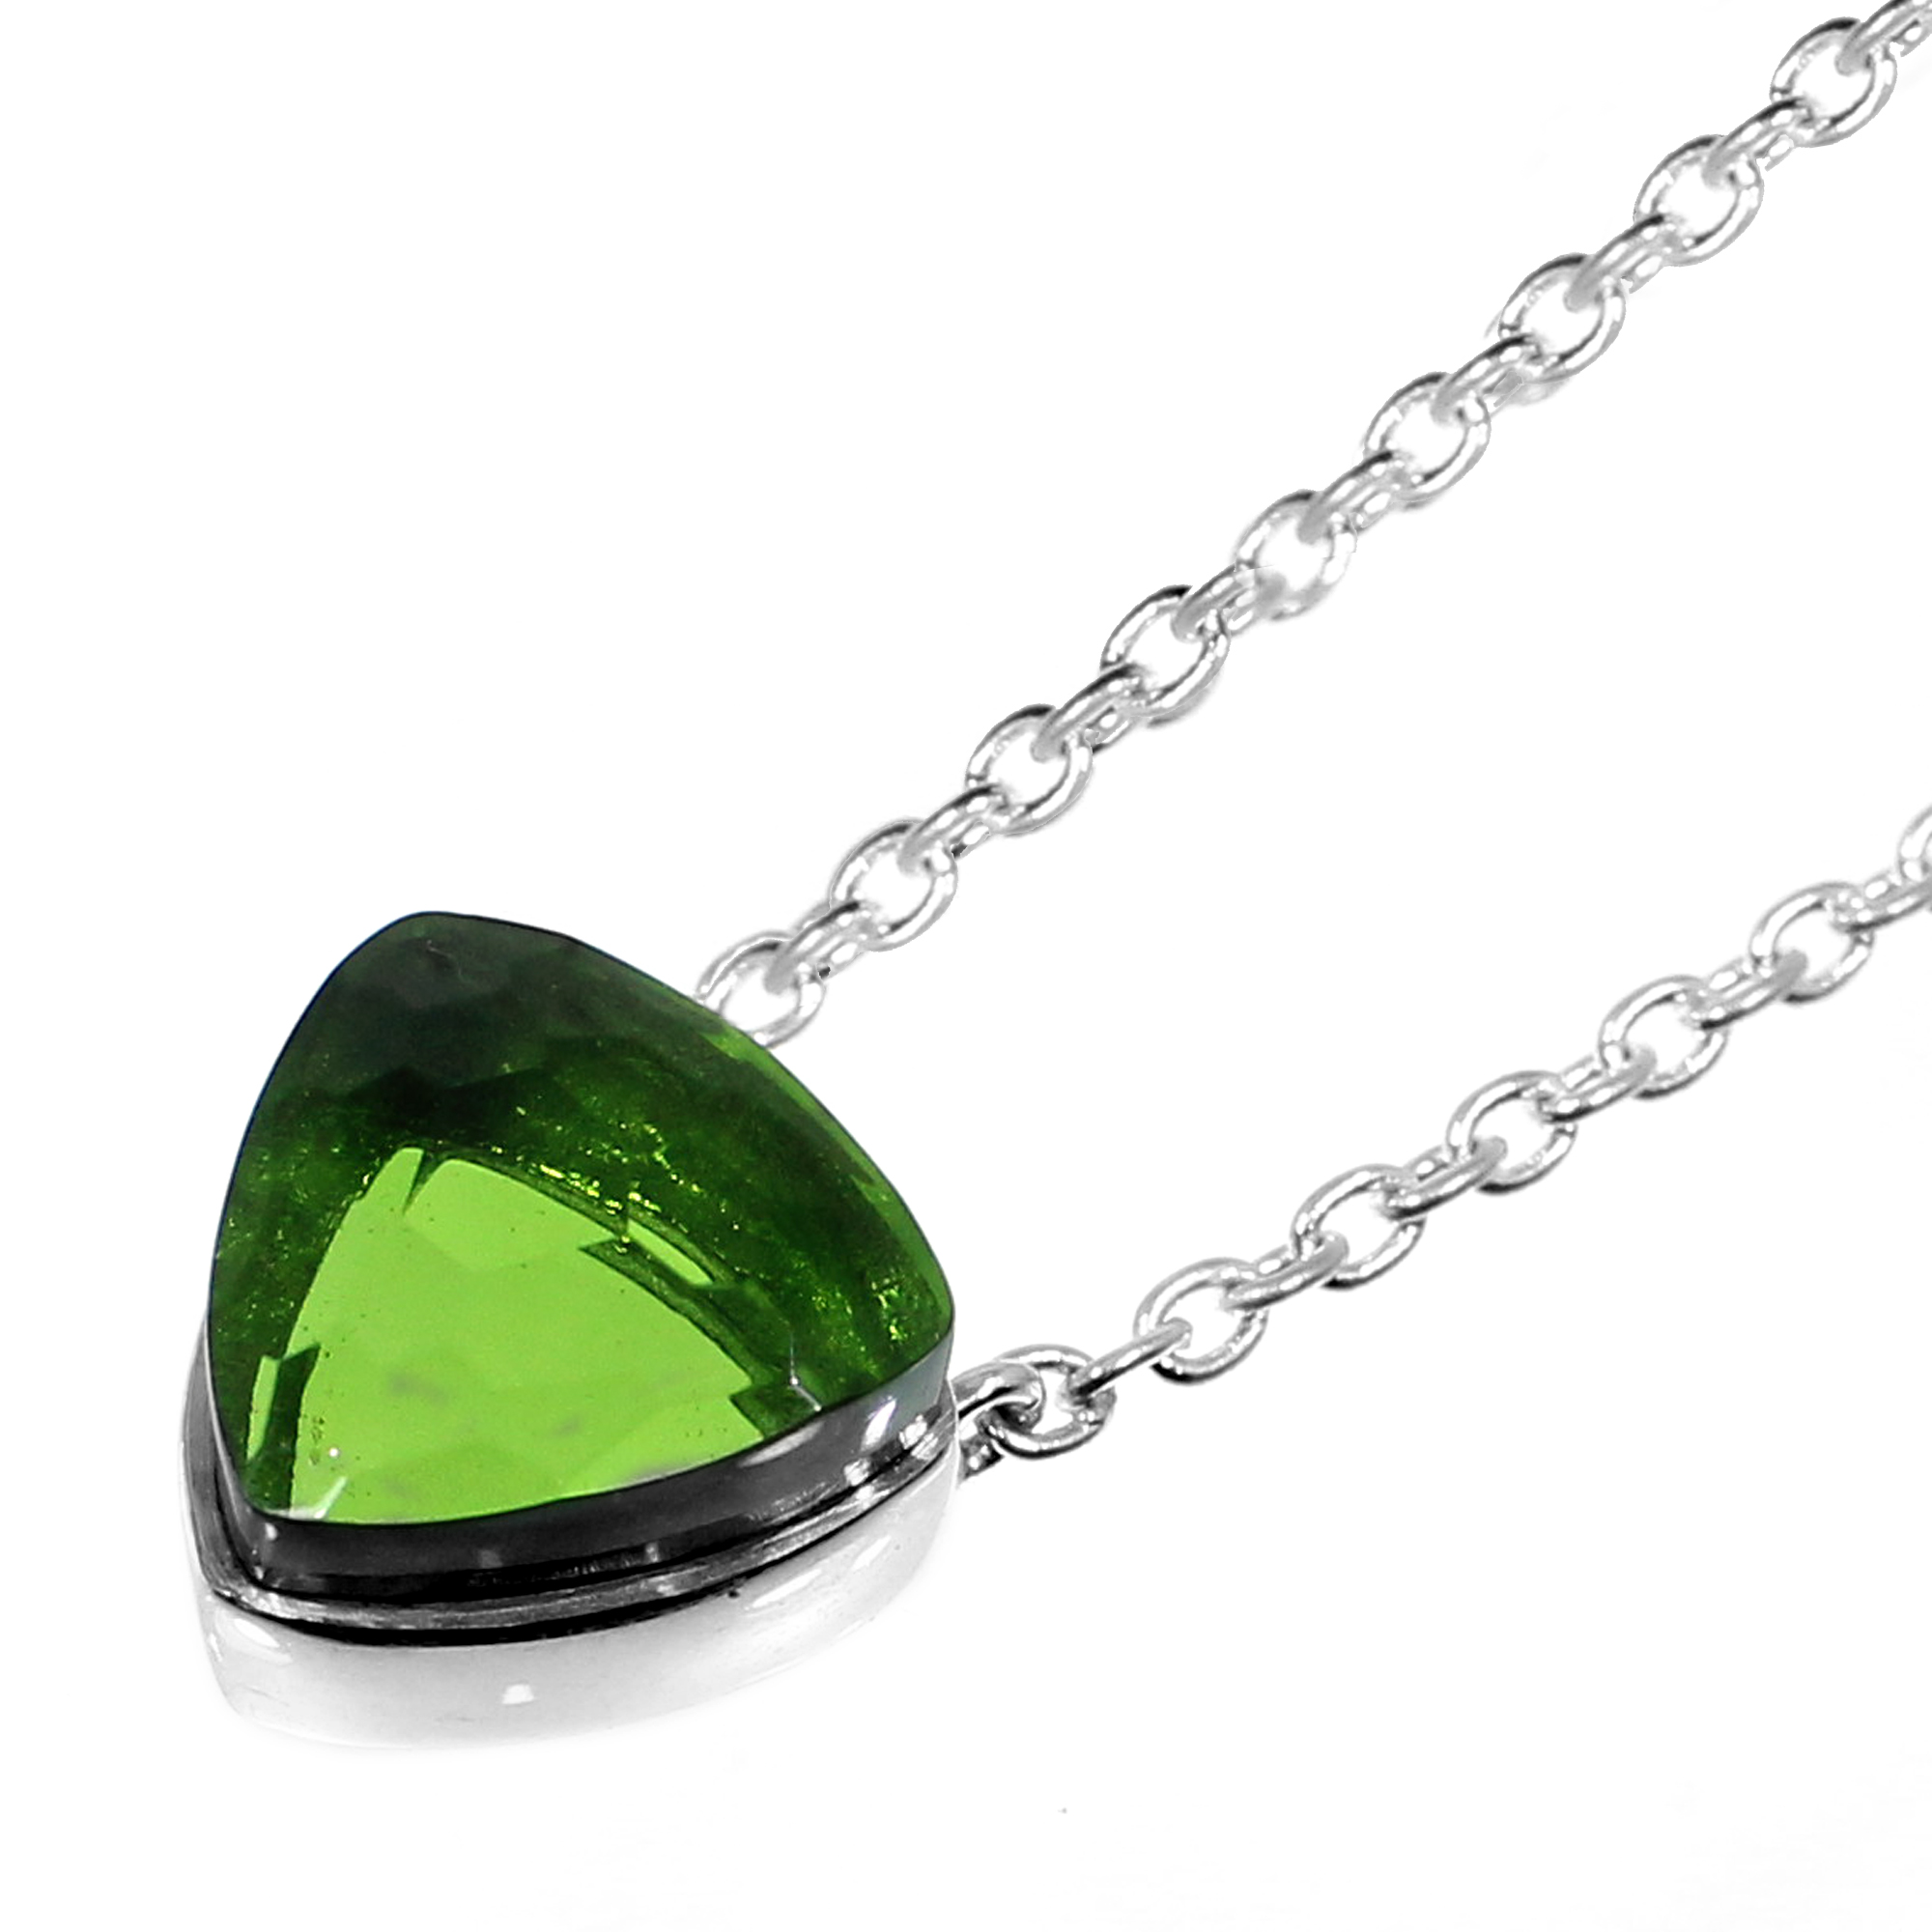 Peridot Hydro 925 Sterling Silver Long Chain Necklace